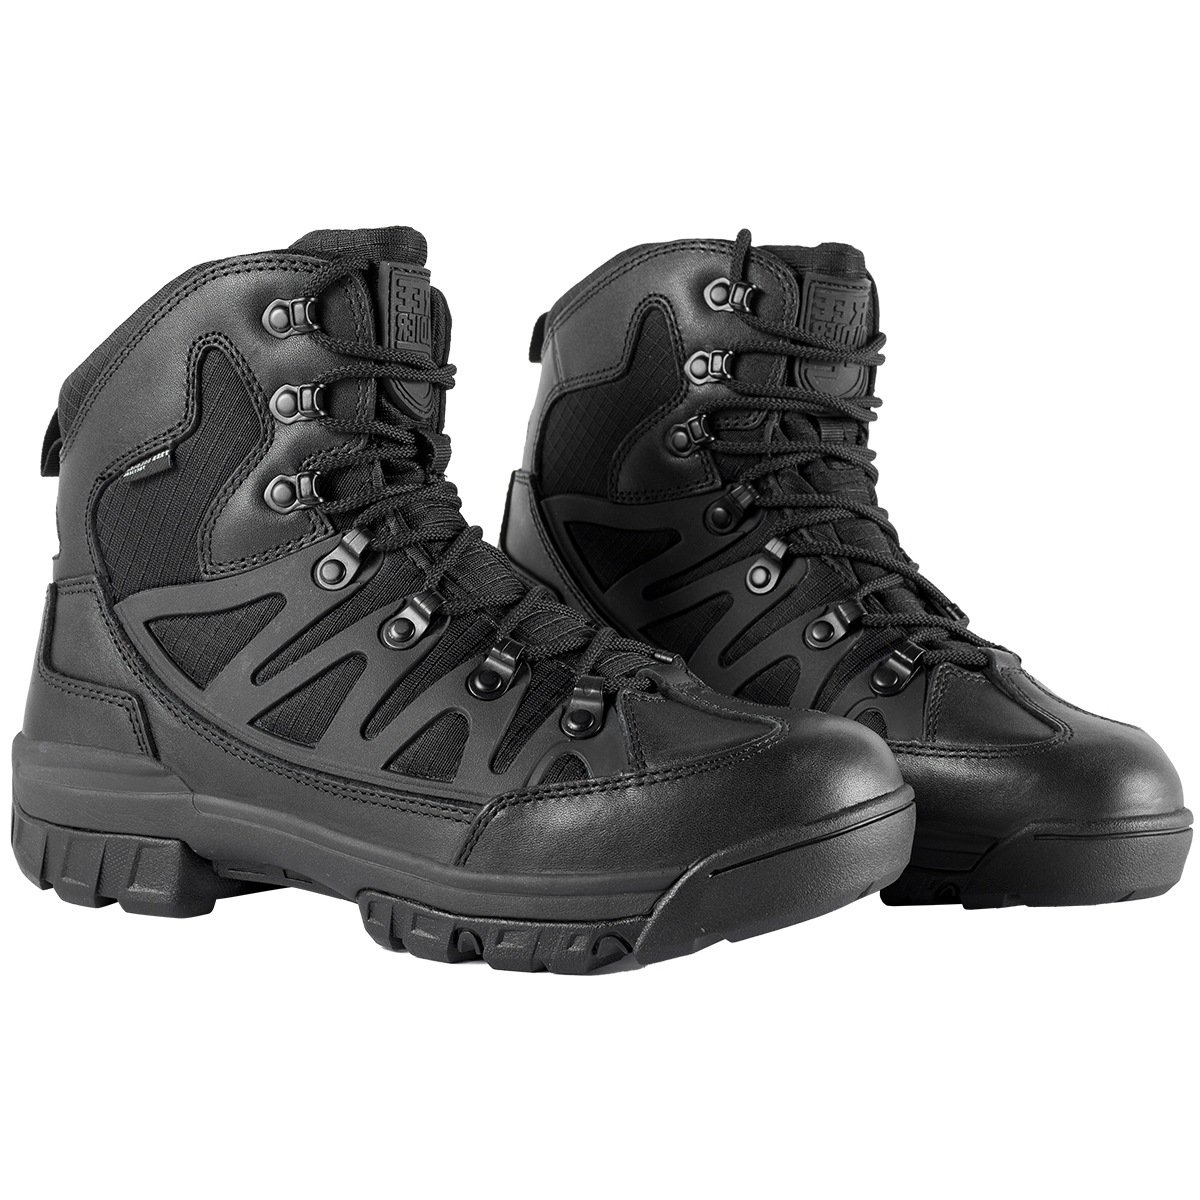 Free SoldierメンズTactical Boots Mid High Riseハイキング靴冬レザーブーツ B076H2JCS2 8 US|Black + Leather Black + Leather 8 US